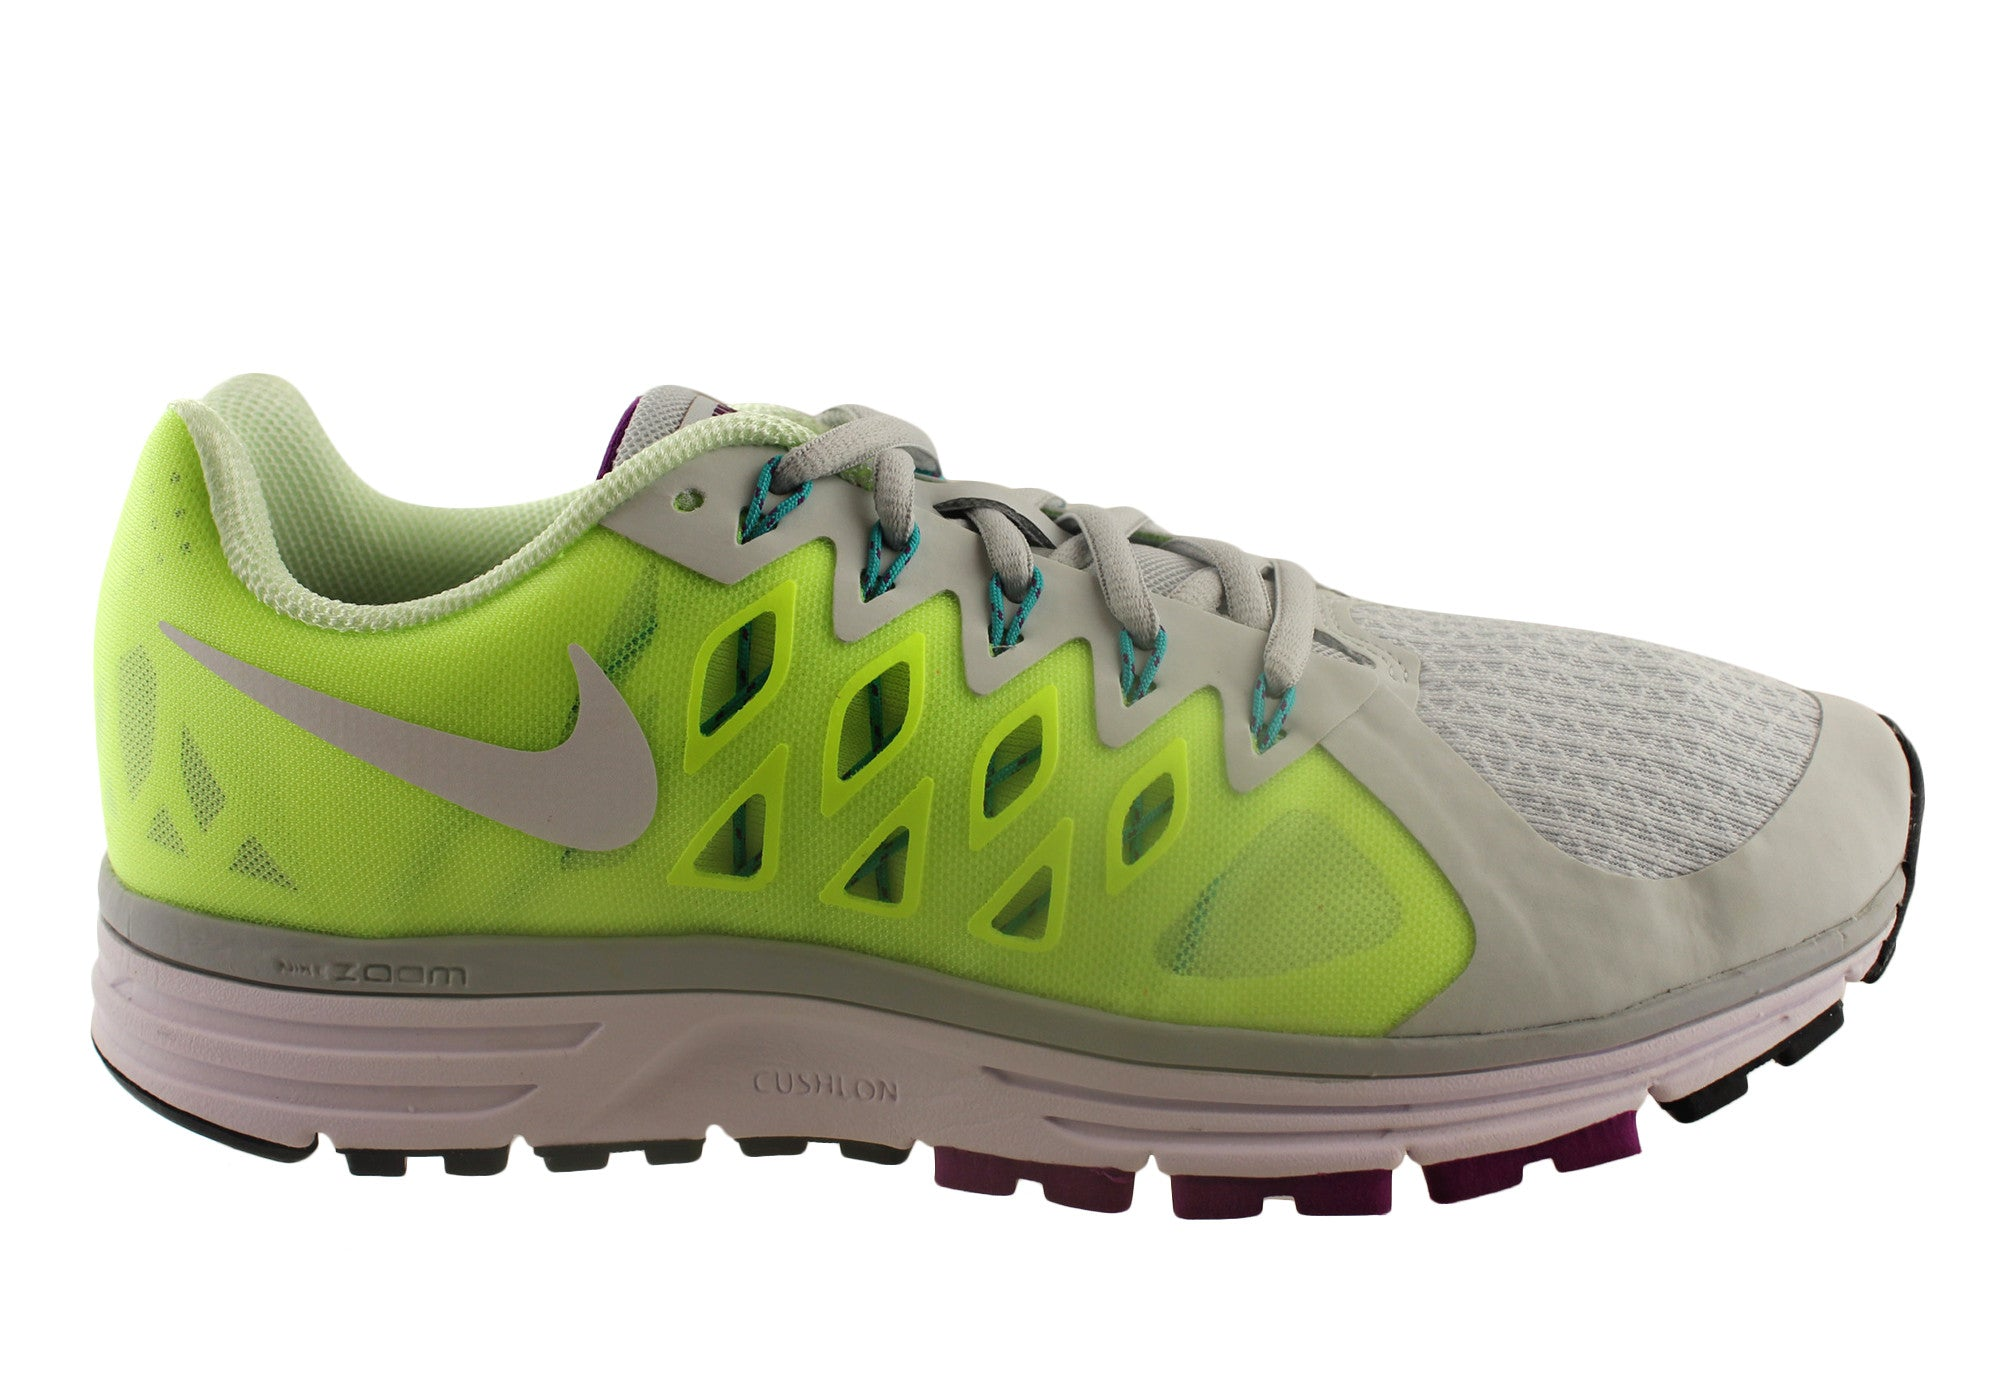 Womens Running Shoeswide 9 WidthBrand House Vomero Nike Zoom rCWxedBo